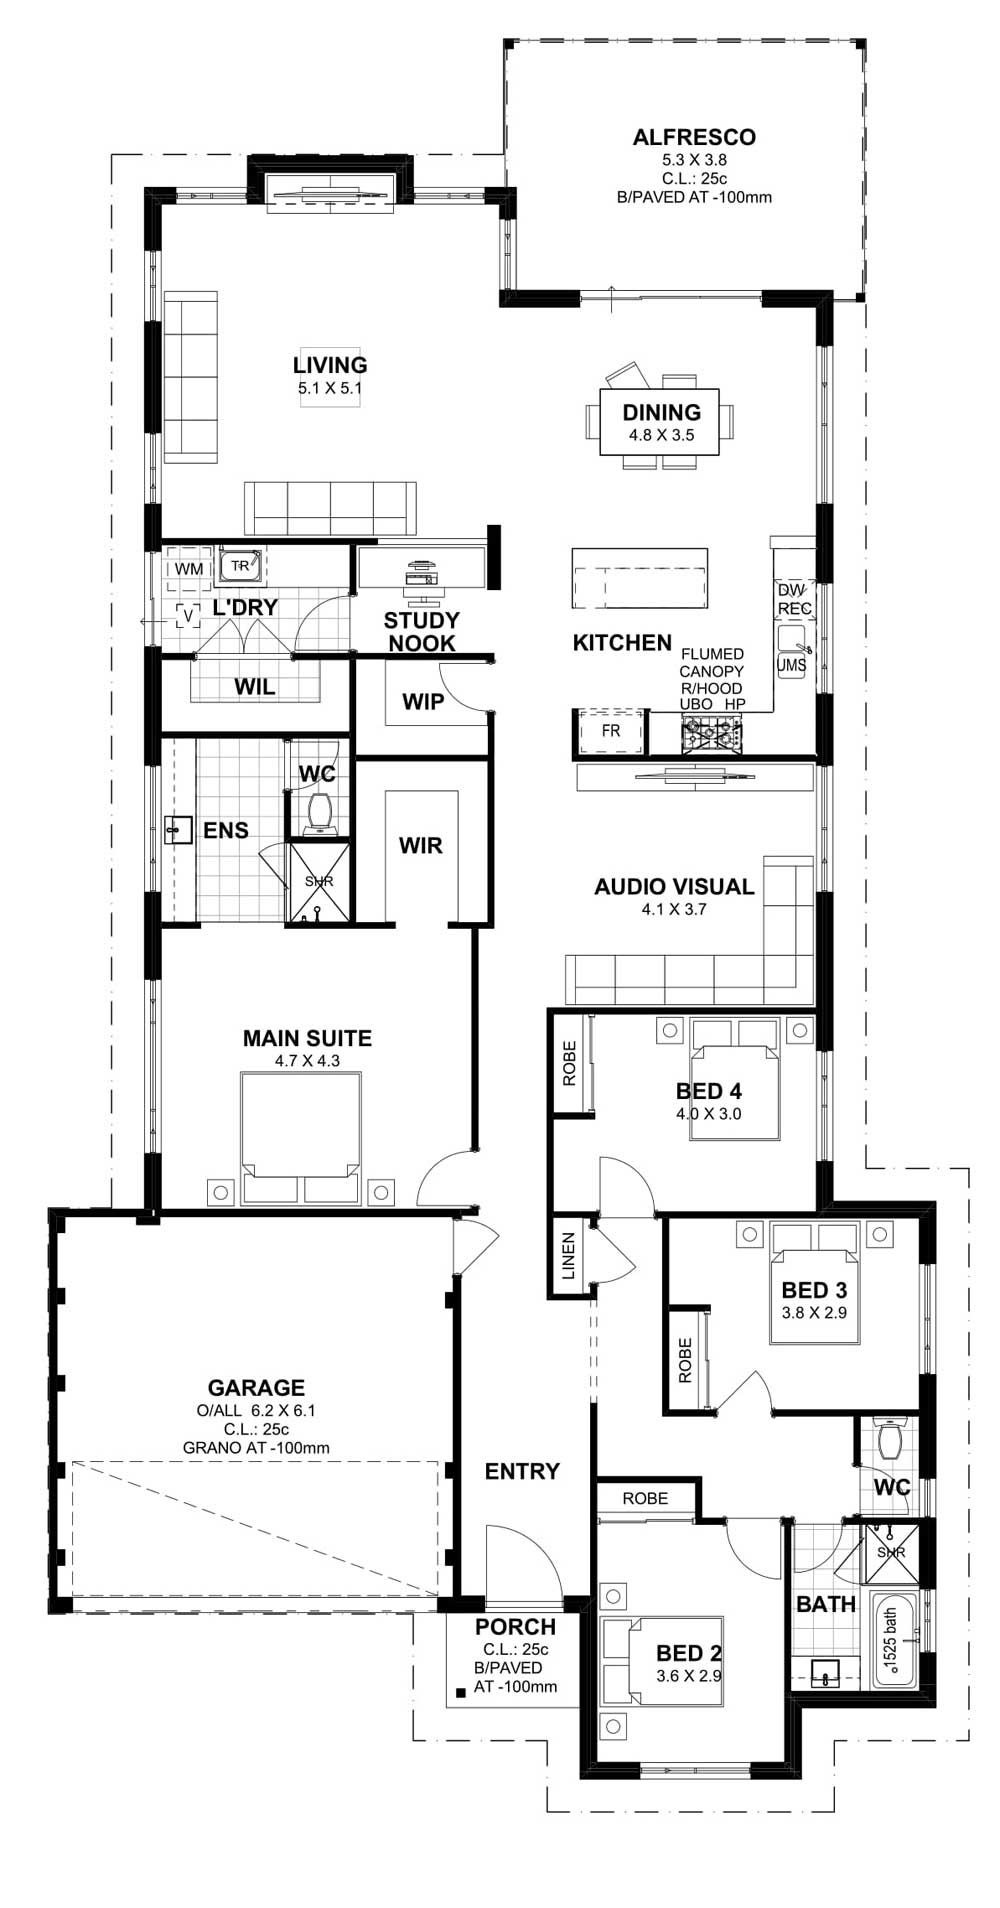 Home Builders House Plans New Aveling Homes Home Builders Perth